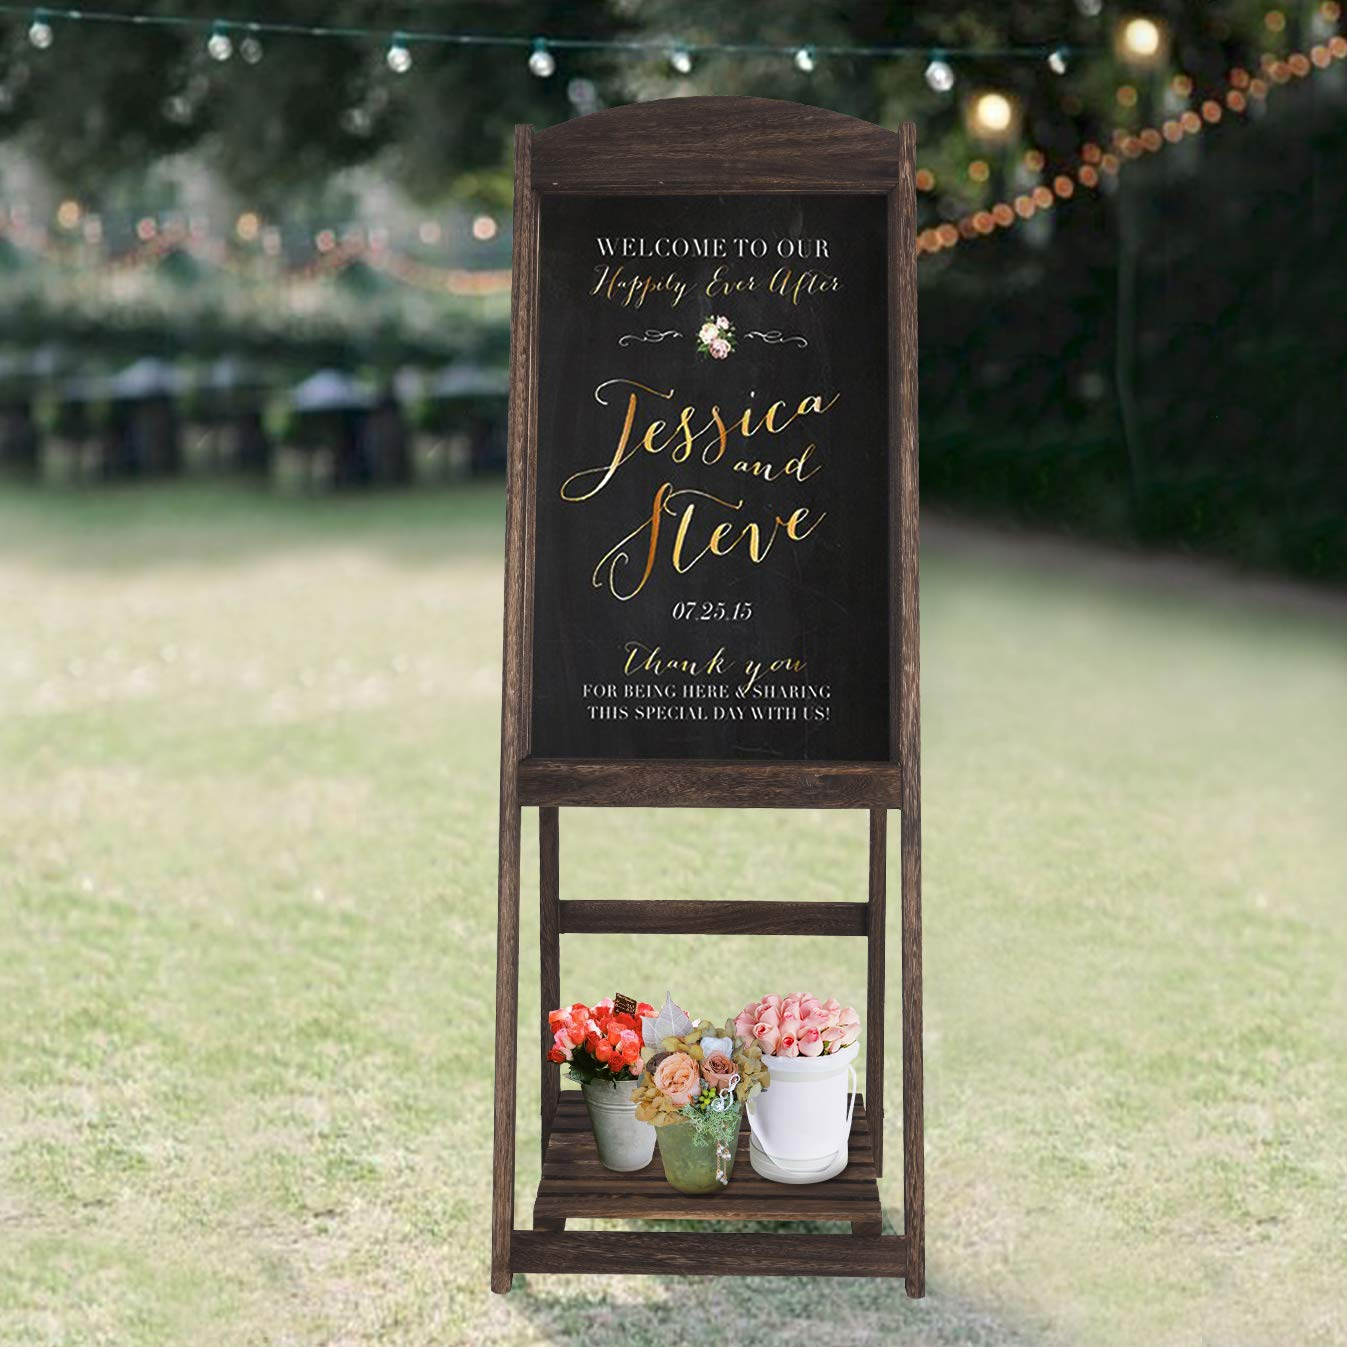 RHF Wedding Chalkboard Signs,Rustic Wedding Decorations,A-frame Easel Chalkboard Sign with Display Shelf,Vintage Large Chalkboard Easel, Freestanding ...